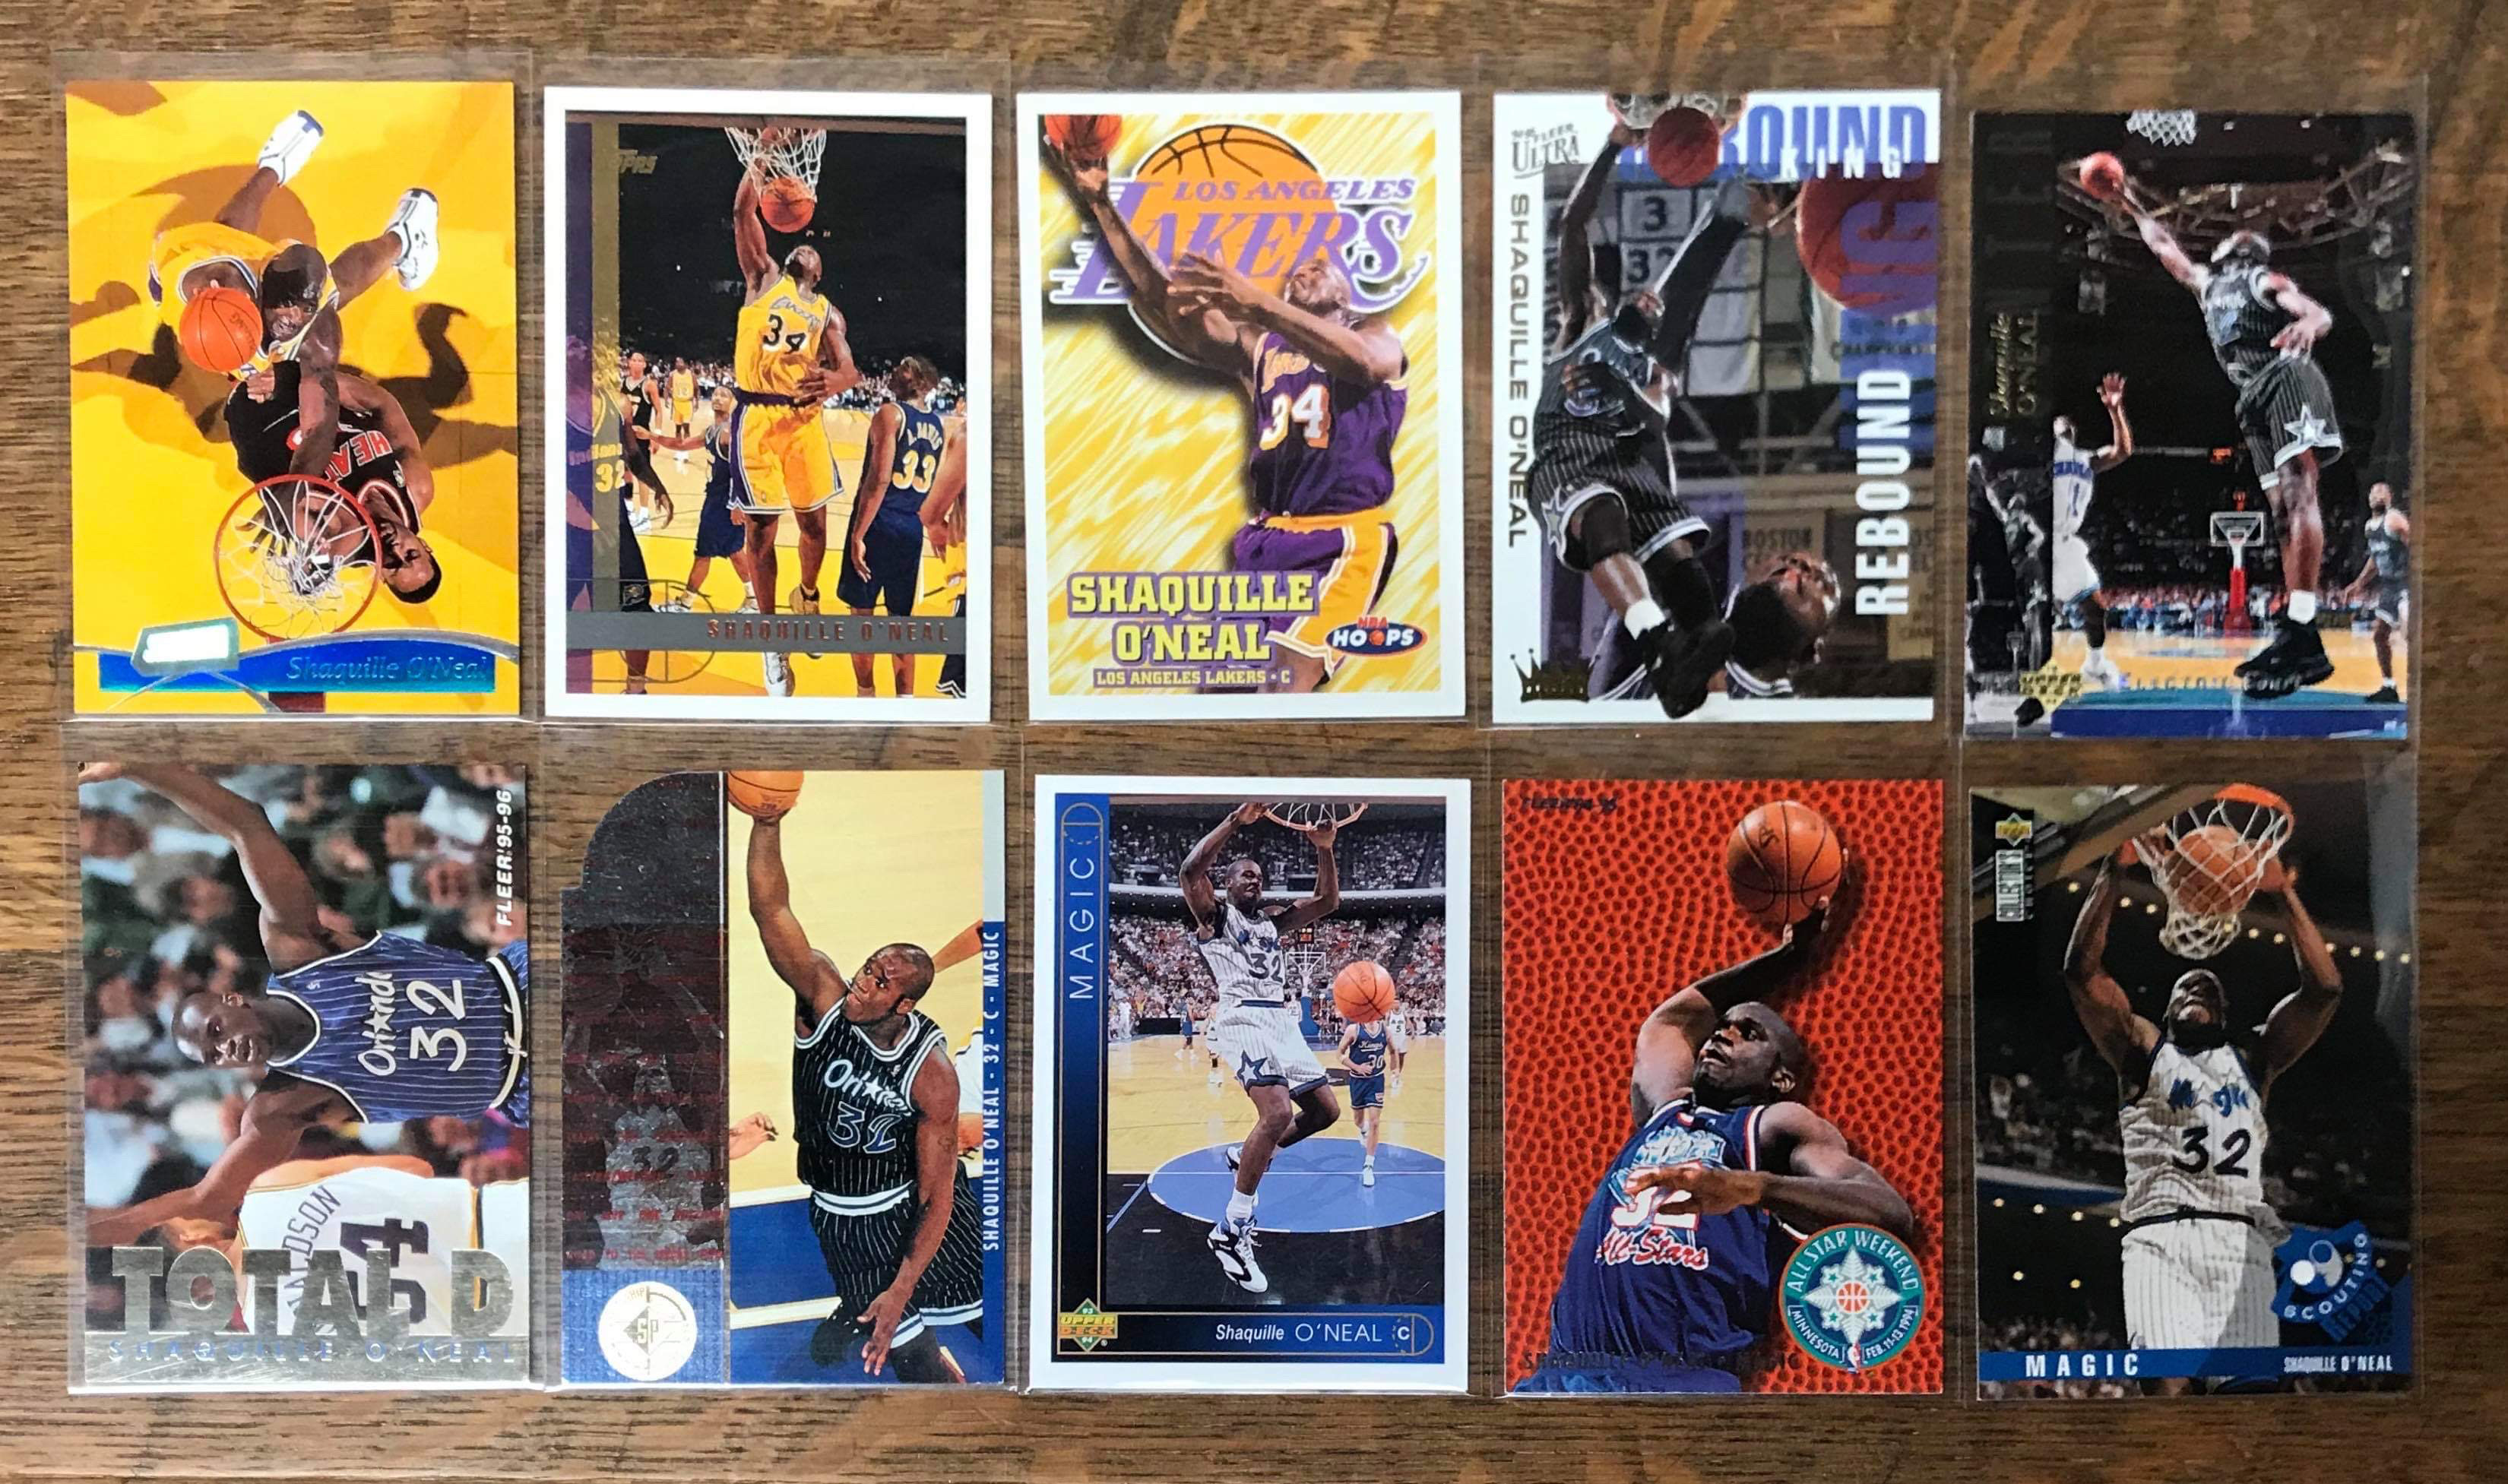 10 - Shaquille O'Neal Cards donated by Justin Skjerven